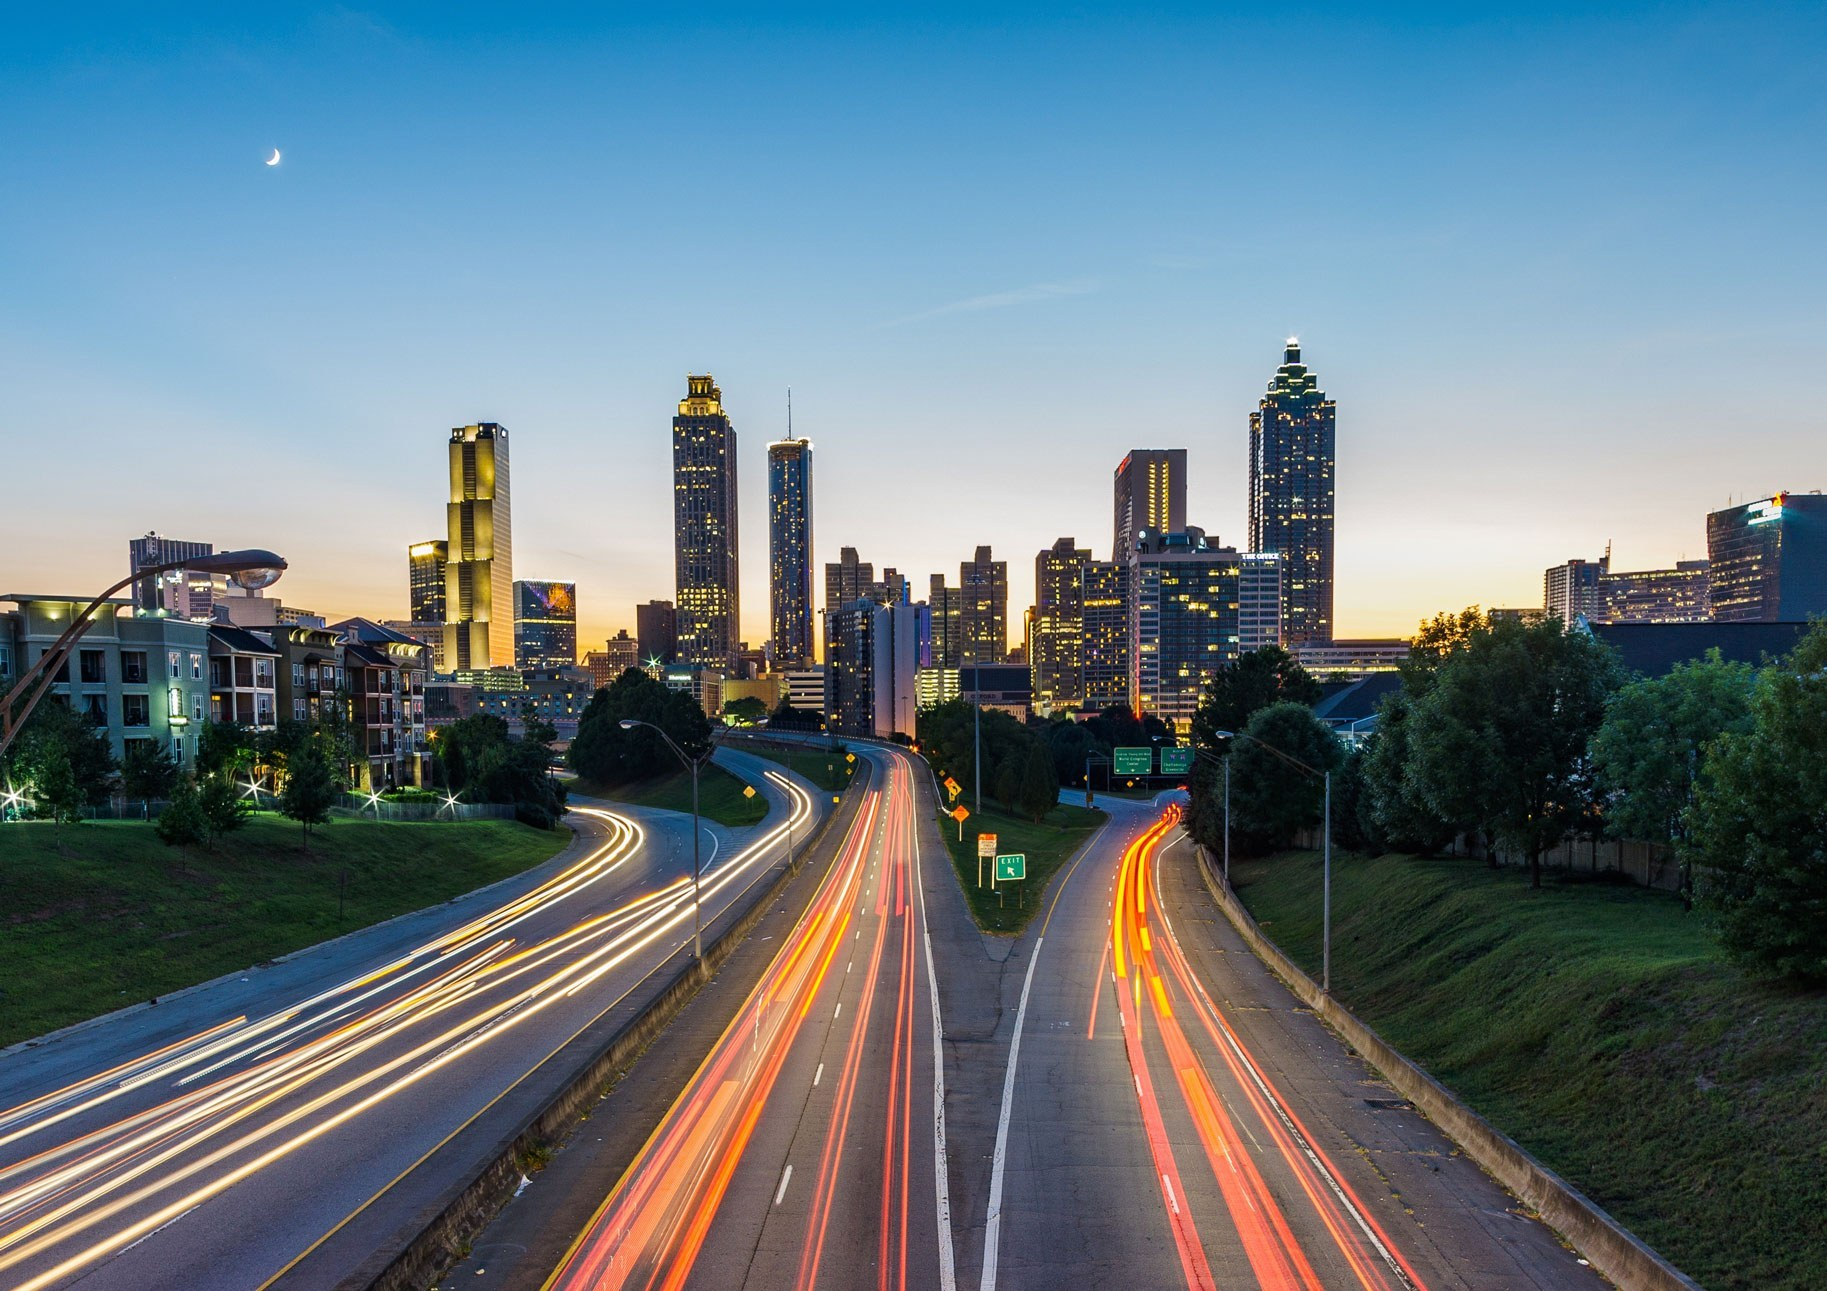 Atlanta Joey Kyber 132520 Unsplash